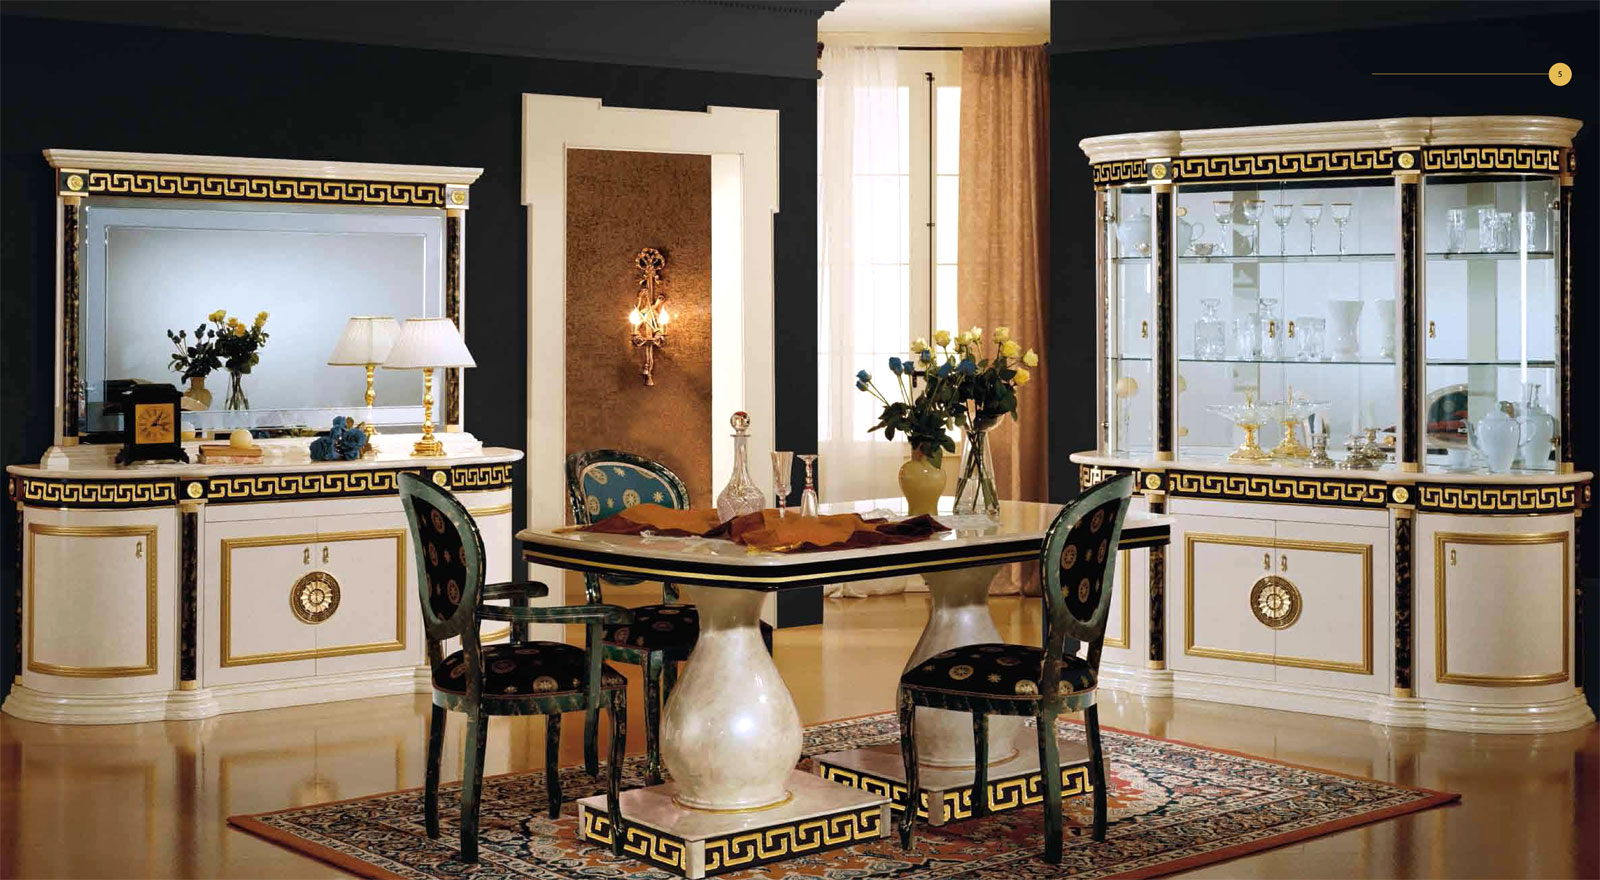 design luxus wohnzimmer esszimmer beige italienische designer m bel ebay. Black Bedroom Furniture Sets. Home Design Ideas